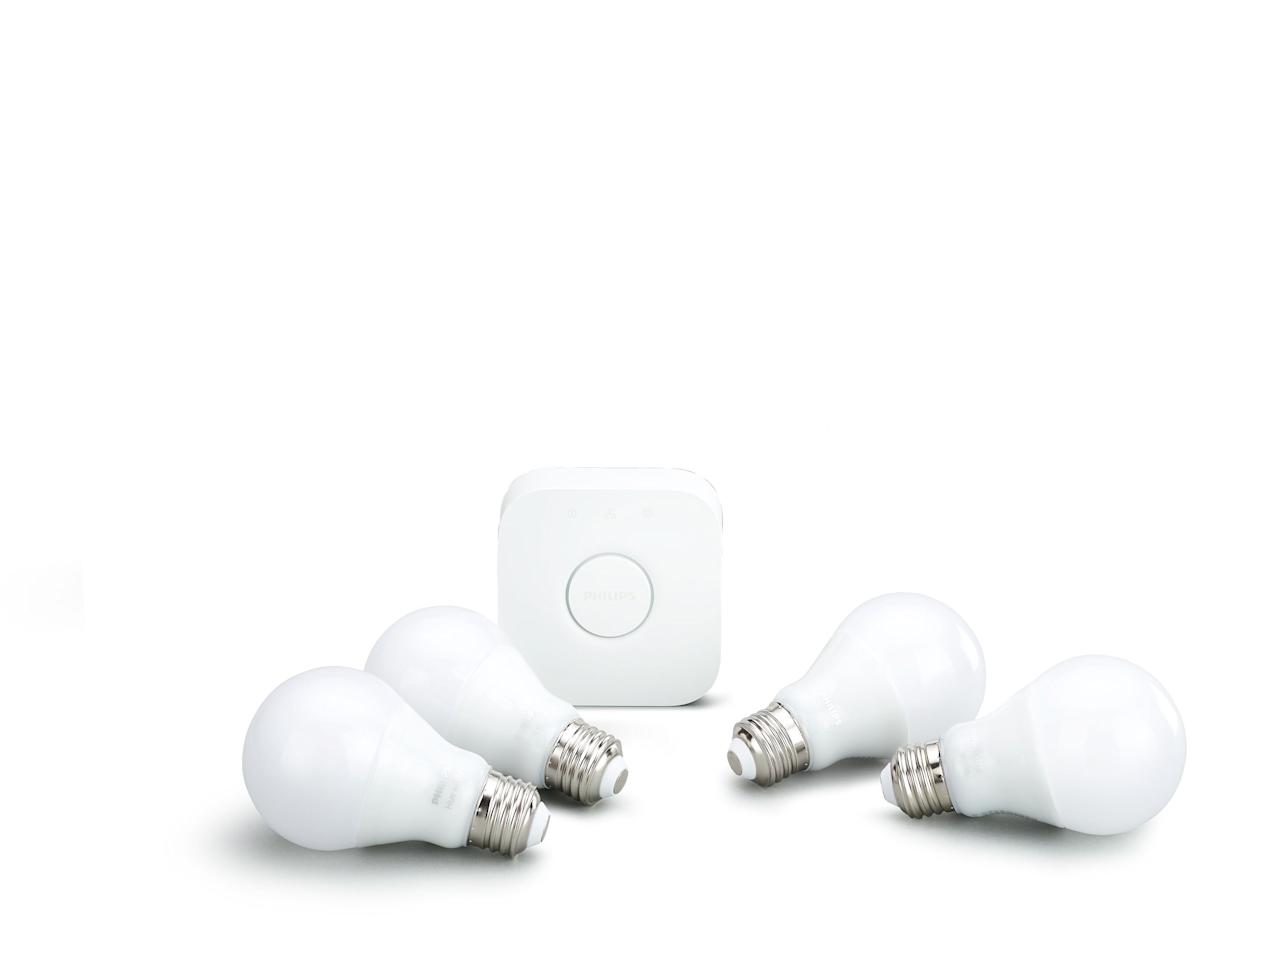 Cast your home in a new light  $100-$600  Move your home into the future by replacing your old incandescent light bulbs with Wi-Fi- or Bluetooth-enabled versions that save energy and make your light switch obsolete. Companies from GE to Ikea manufacture these so-called smart bulbs, which often, but not always, require connection to a central hub. A starter kit of four light bulbs plus hub device from Philips Hue, one of the systems favored by gadget site Tom's Guide, is $100. Packs of four additional bulbs cost $50. Considering that the average home has close to 40 light bulbs, you can outfit your entire home with smart bulbs for $550. Assuming you haven't already upgraded to LED or CFL bulbs, you will also cut the cost of lighting your home by half or more.